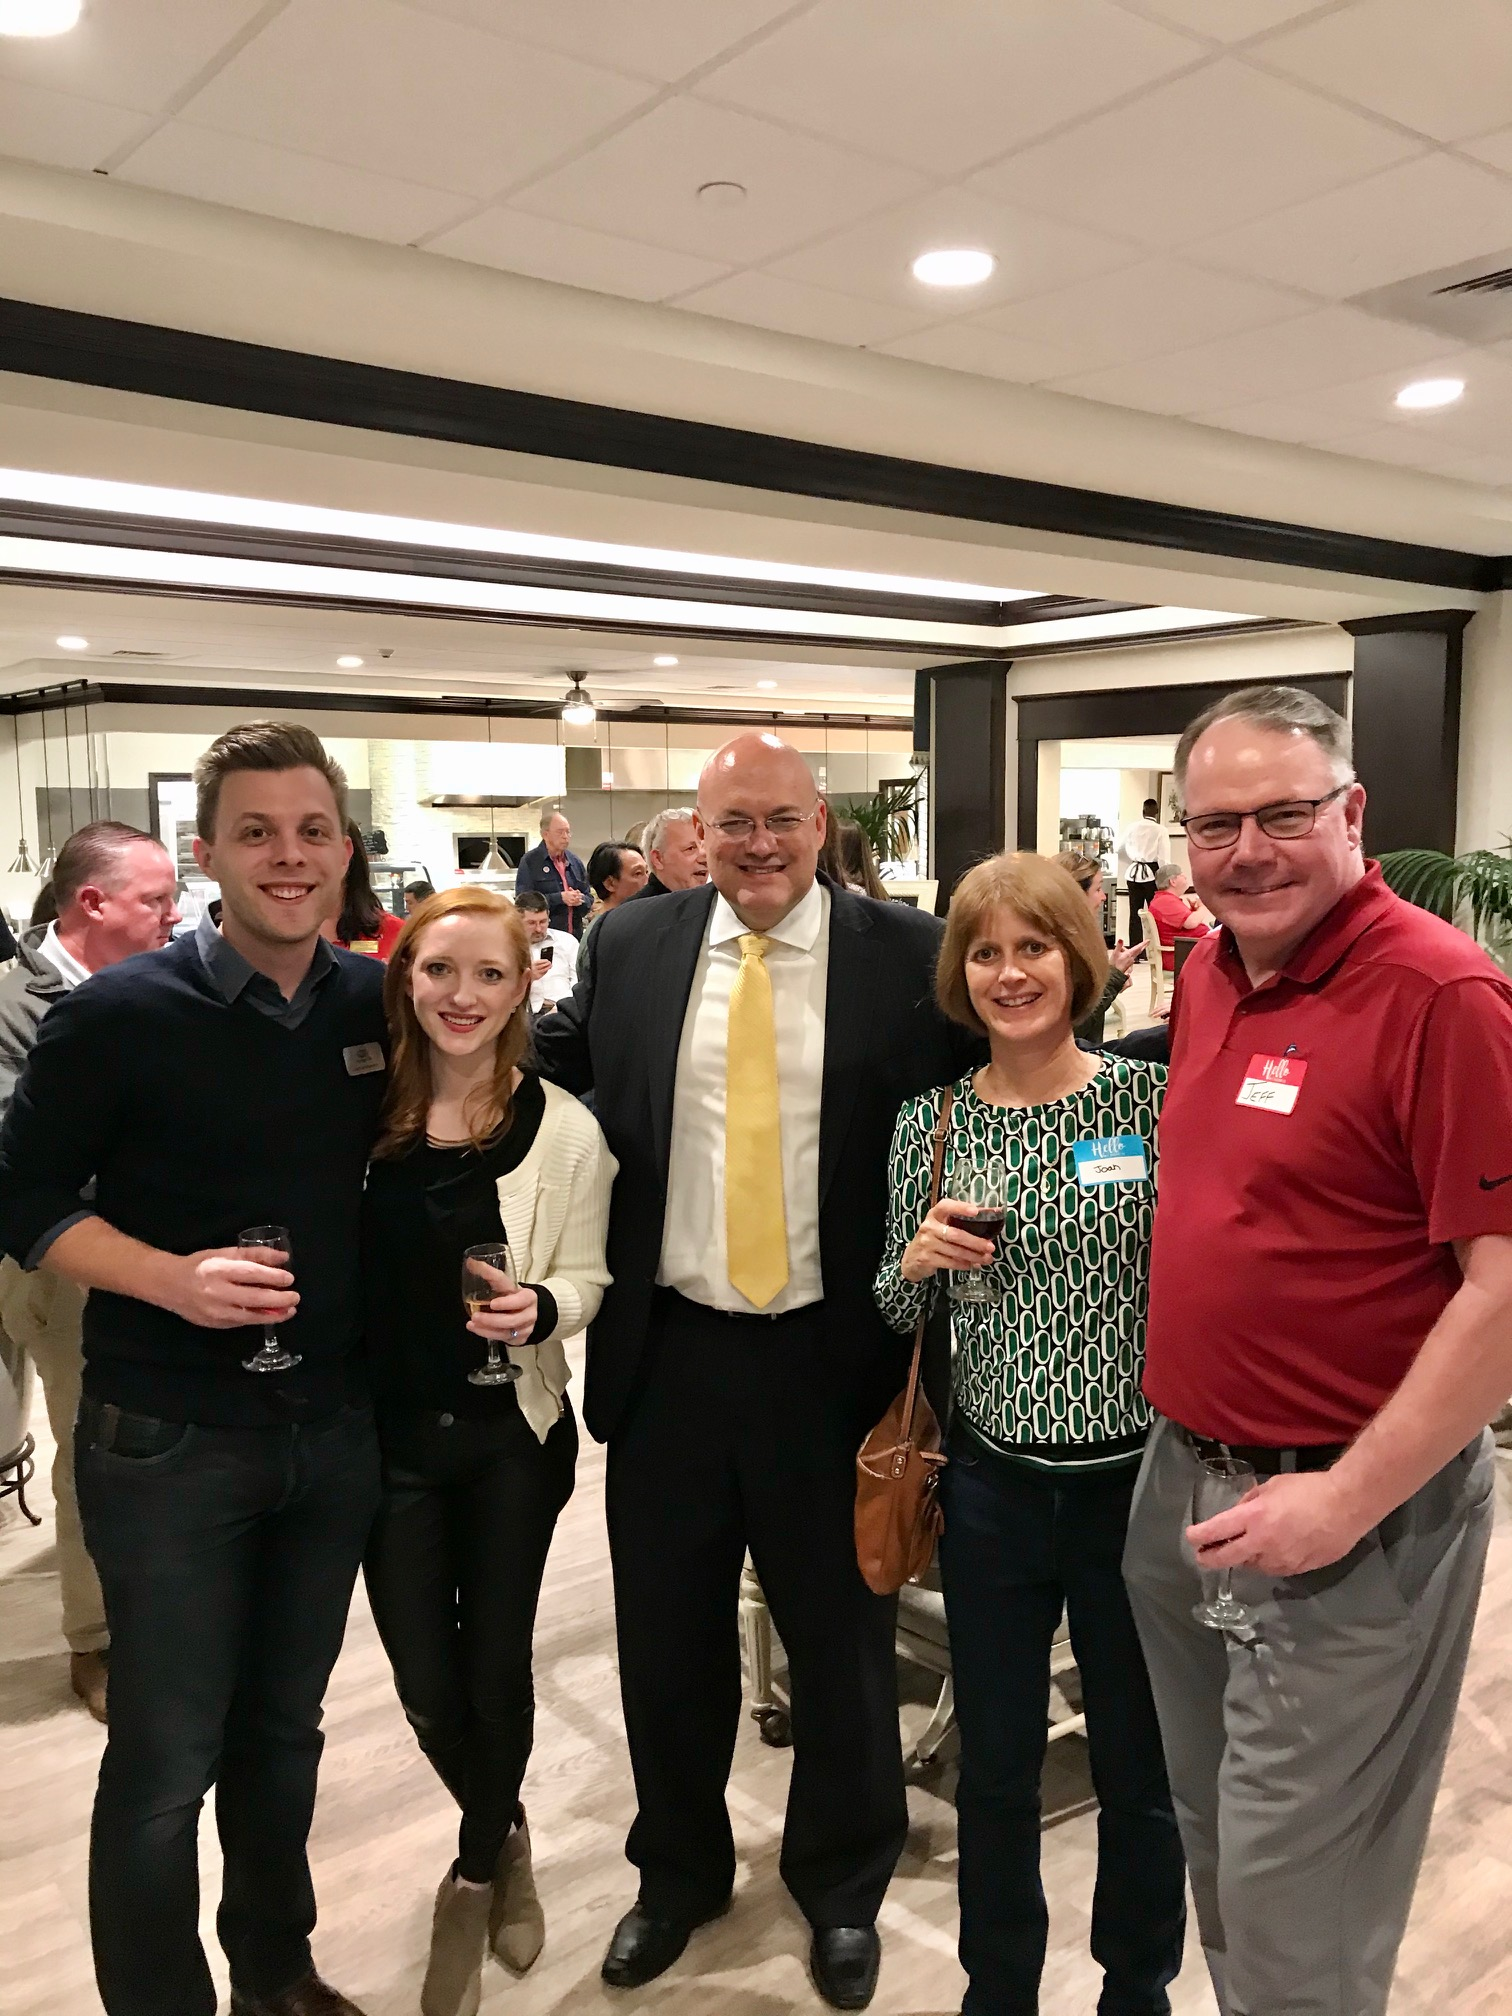 Networking with Josh Wurdemann and Dr. Rachel Wurdemann, Mark Smith, and Joan and Jeff Caldwell.